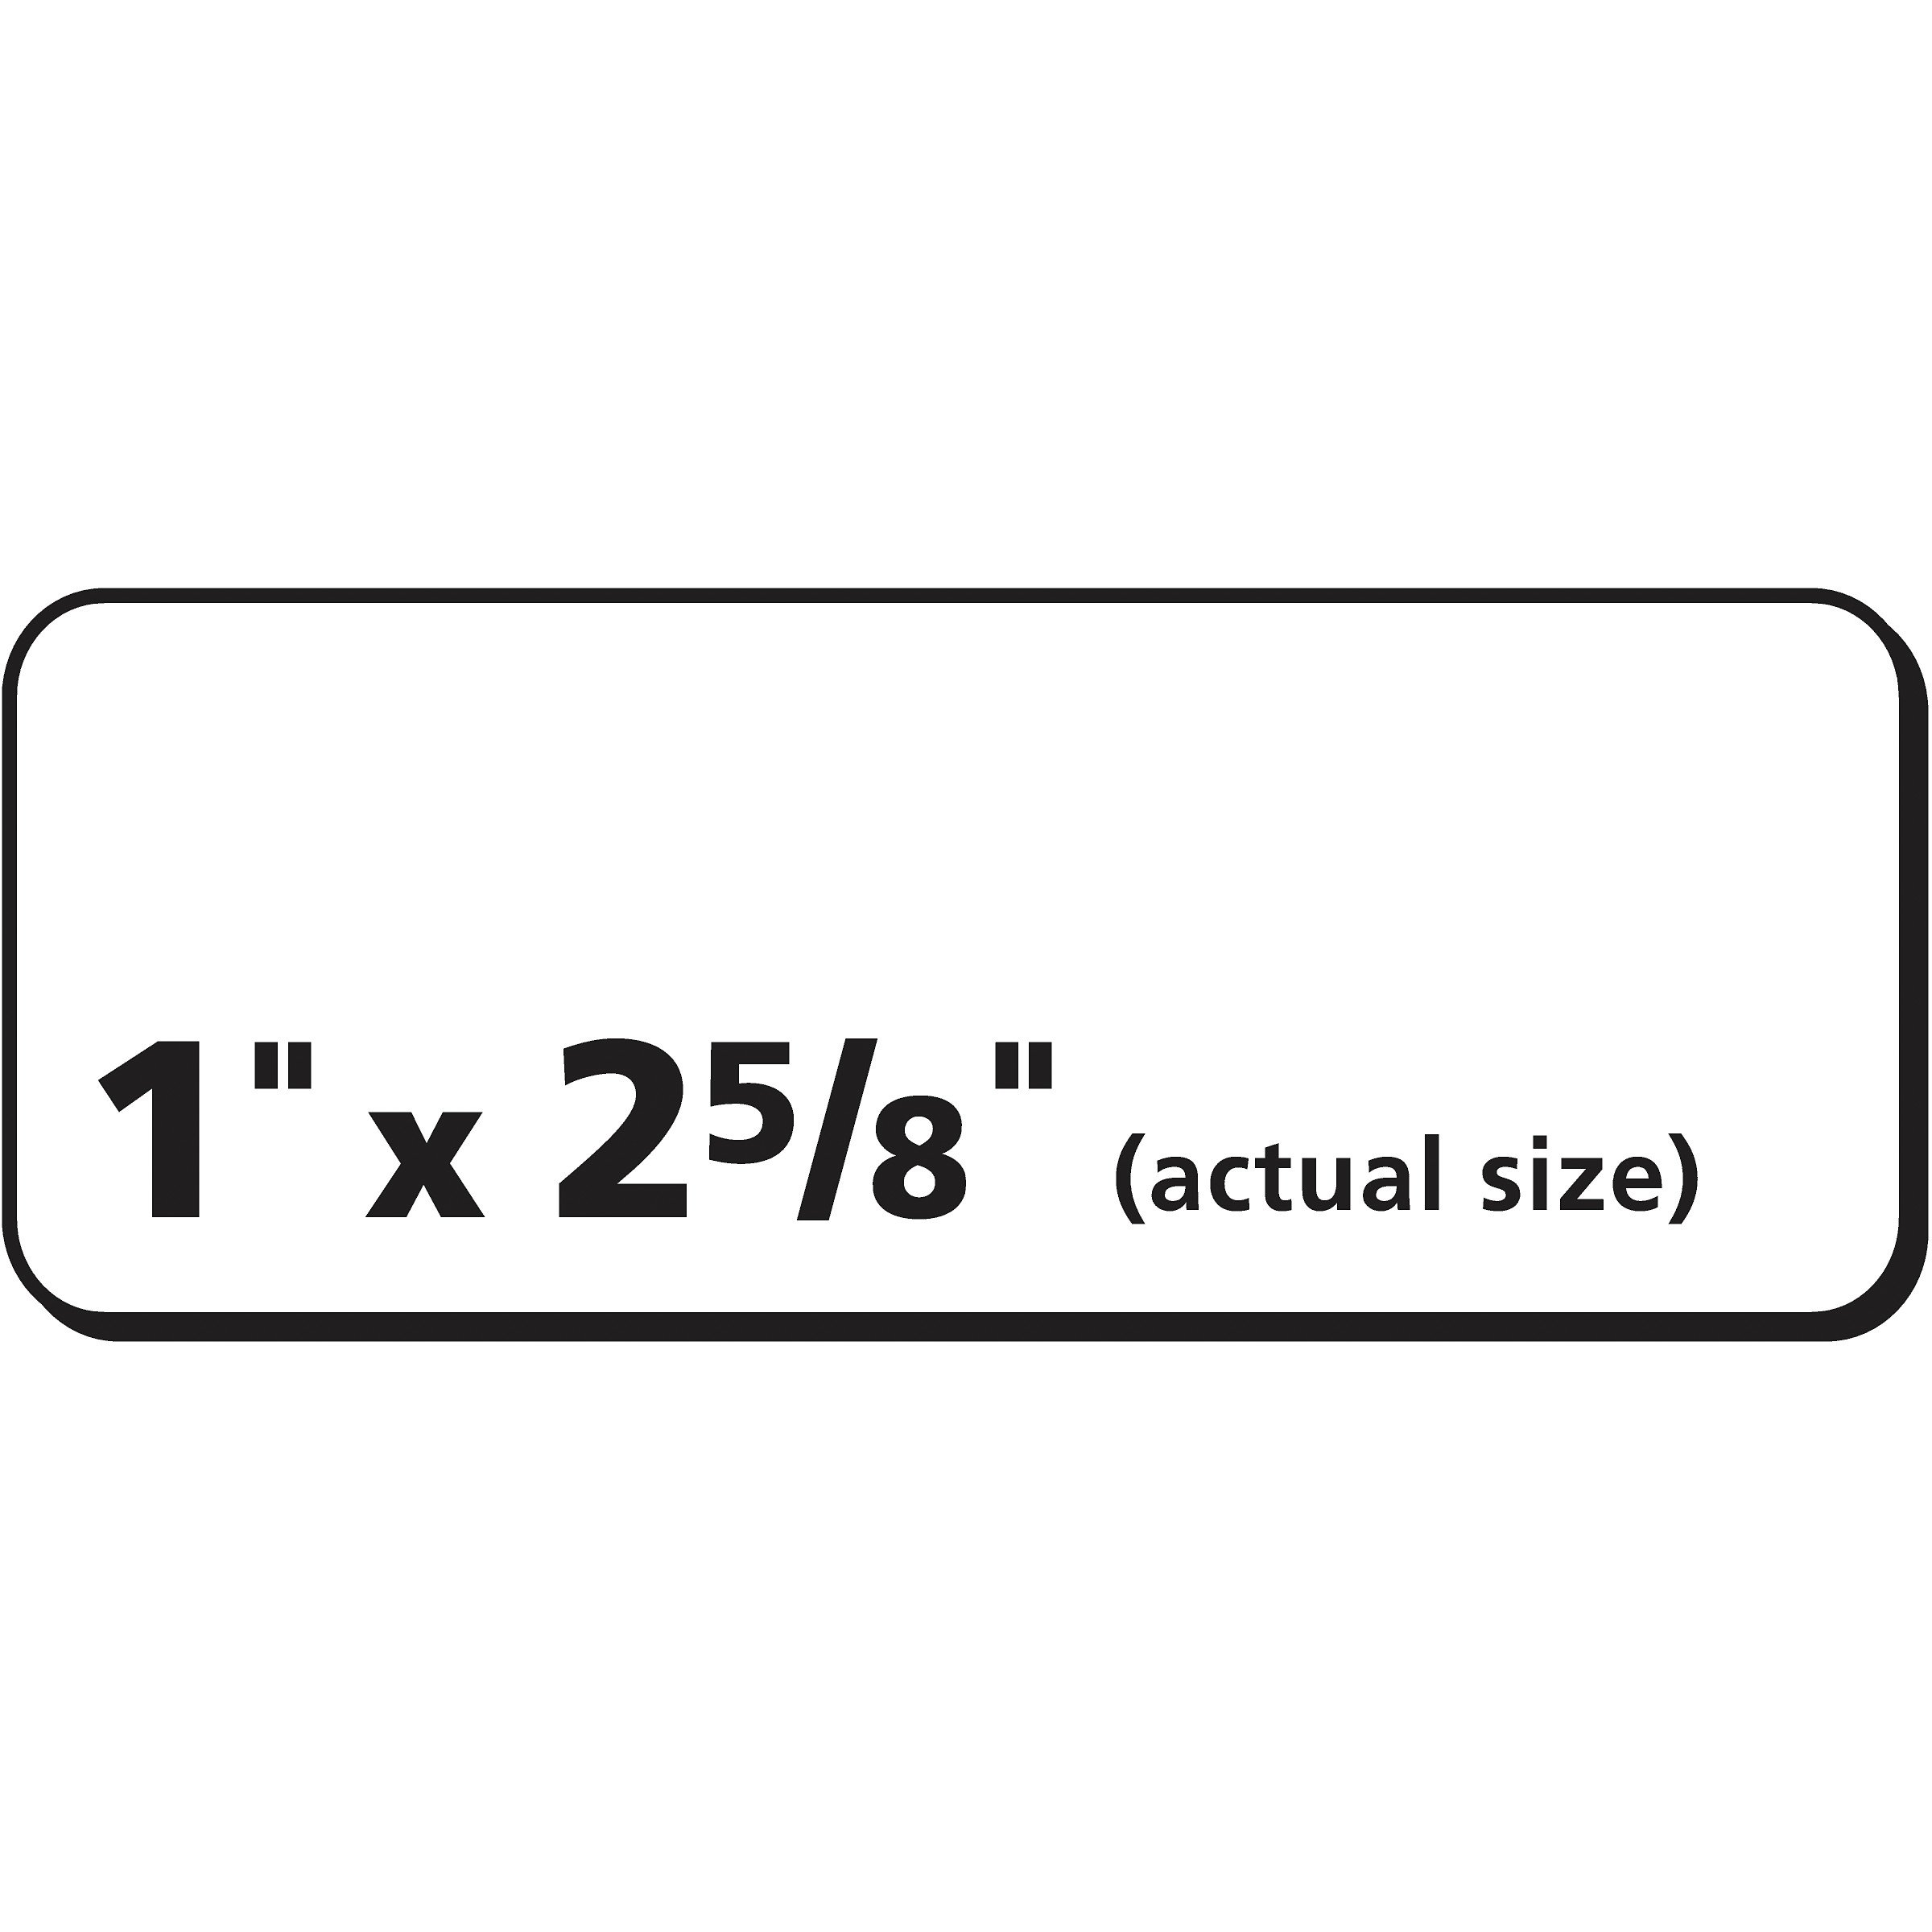 Avery Address Labels For Ink Jet Printers 8250 (20 Sheets) by Avery (Image #5)